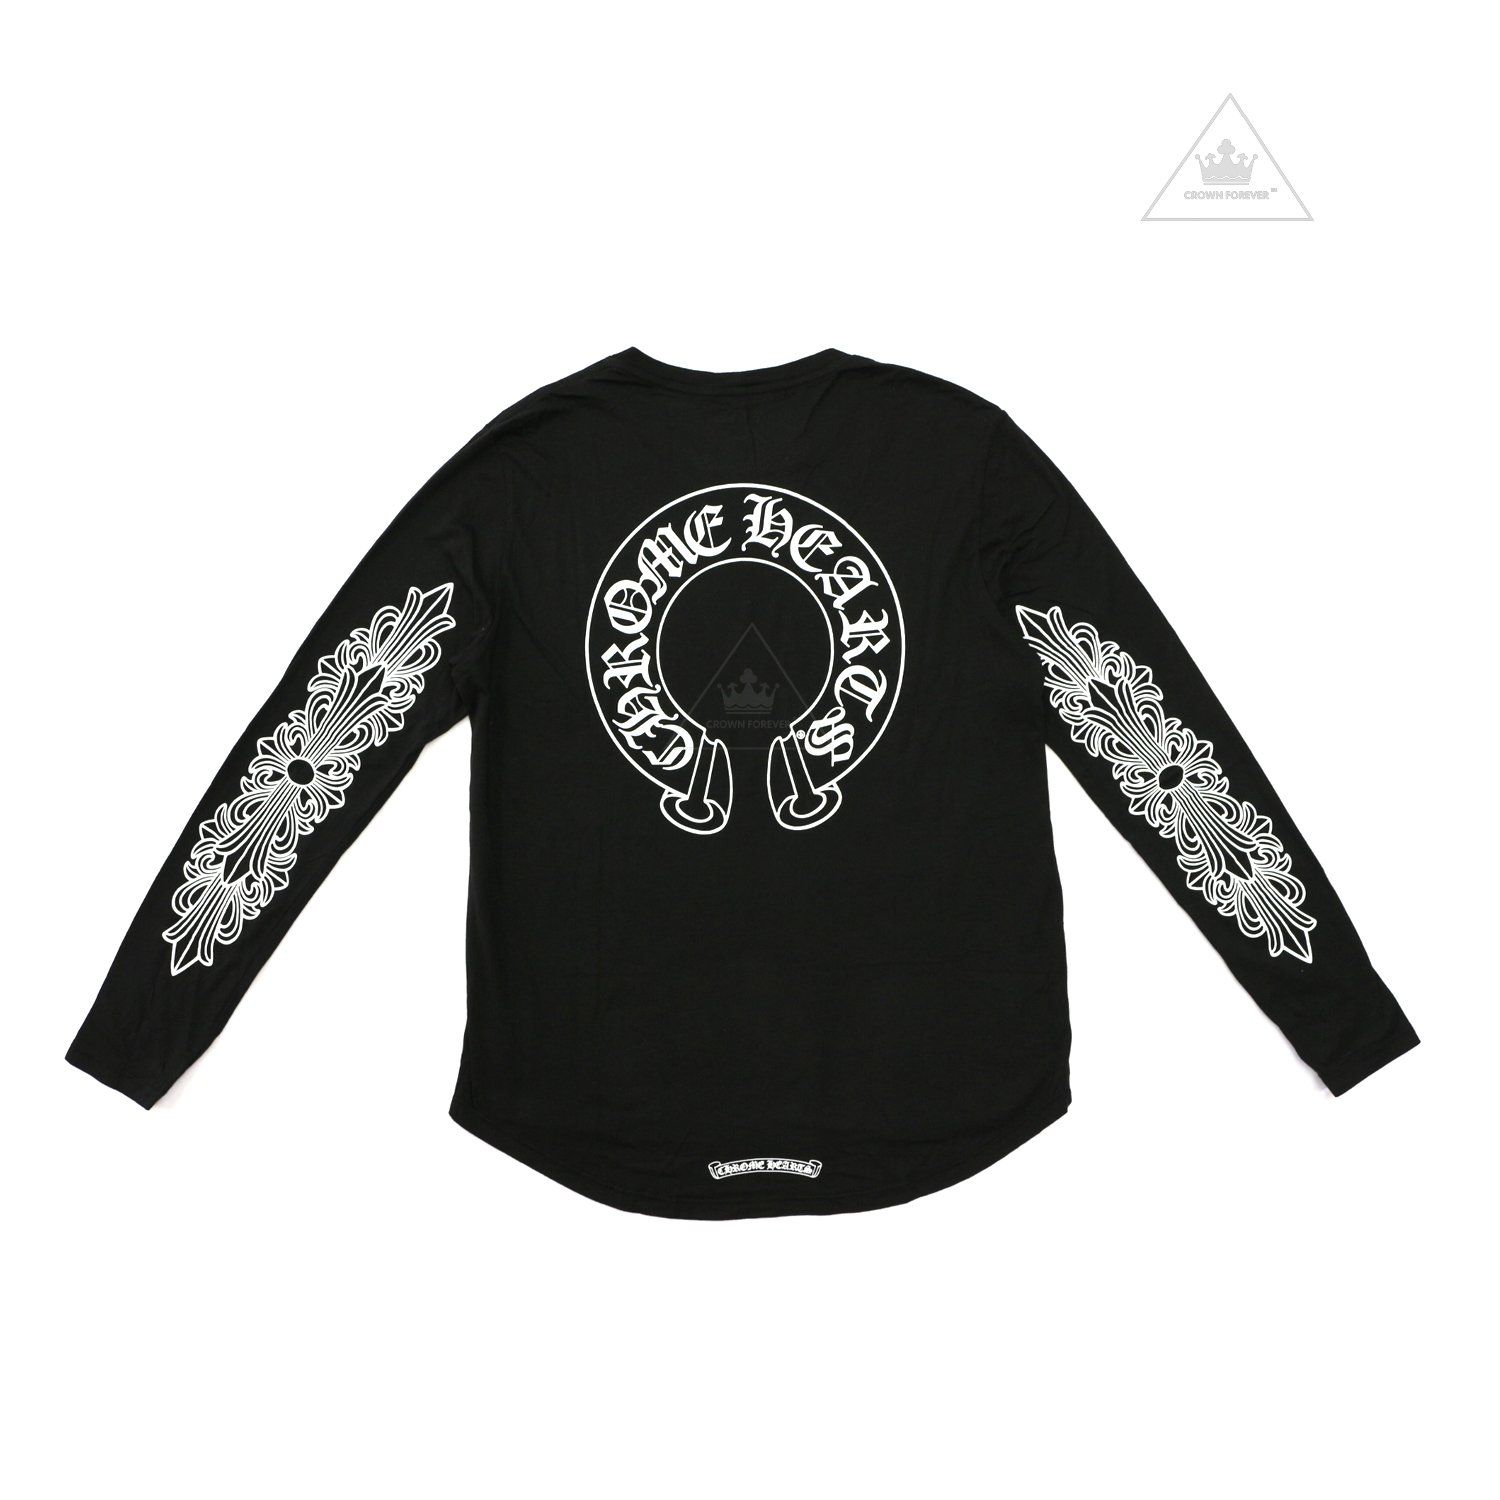 f34608525f8a The Chrome Hearts Horseshoe Floral Cross Logo Long Sleeve Tee - CH Horseshoe  Logo on back - CH Floral Cross Logos on sleeves - CH Scroll on back hem -  100% ...